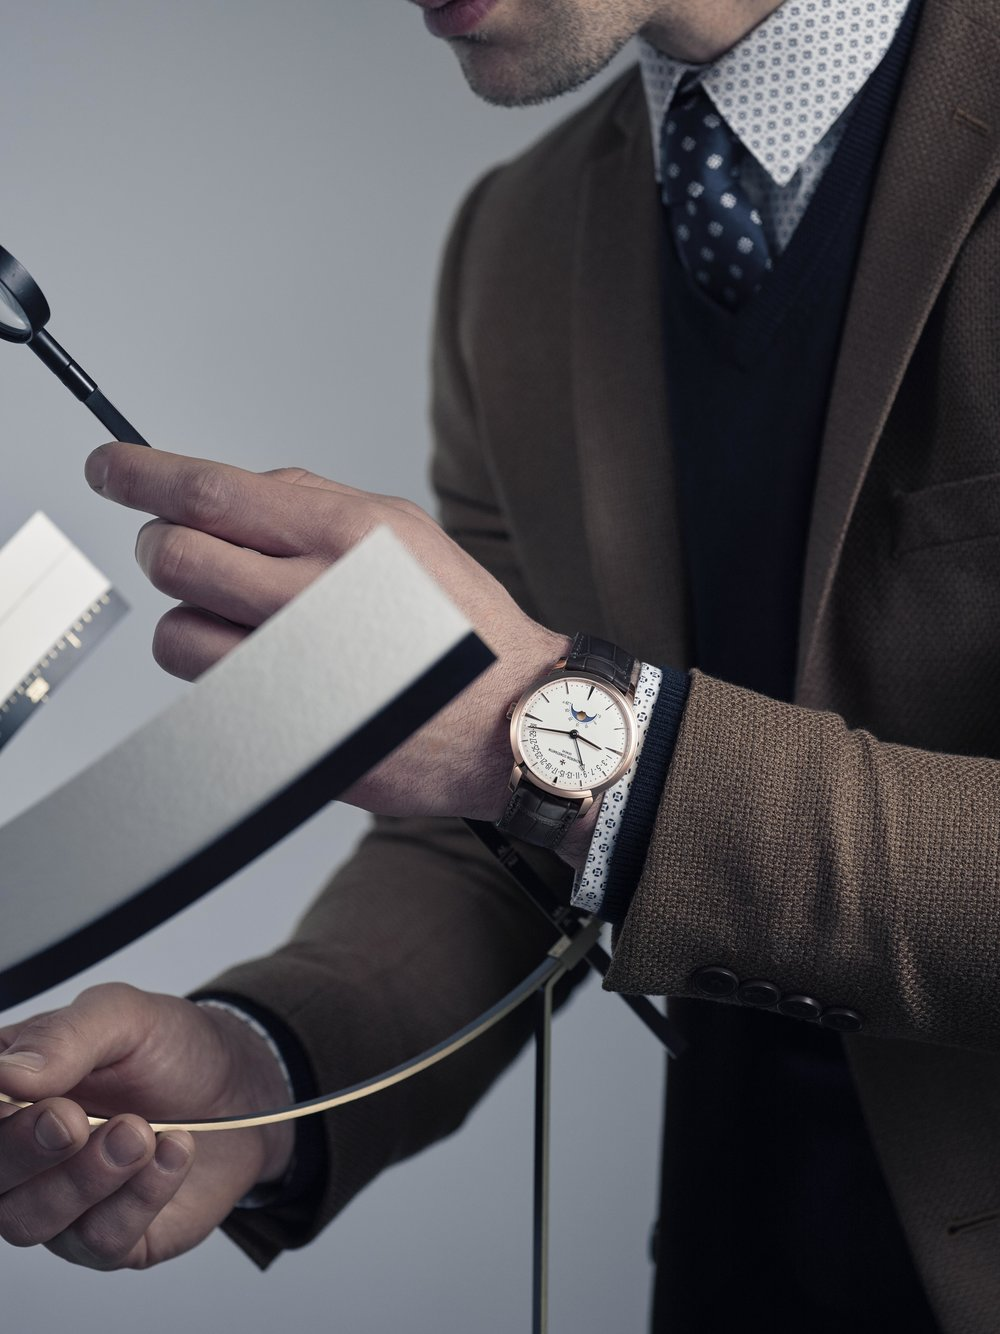 Vacheron Constantin Astro Watch